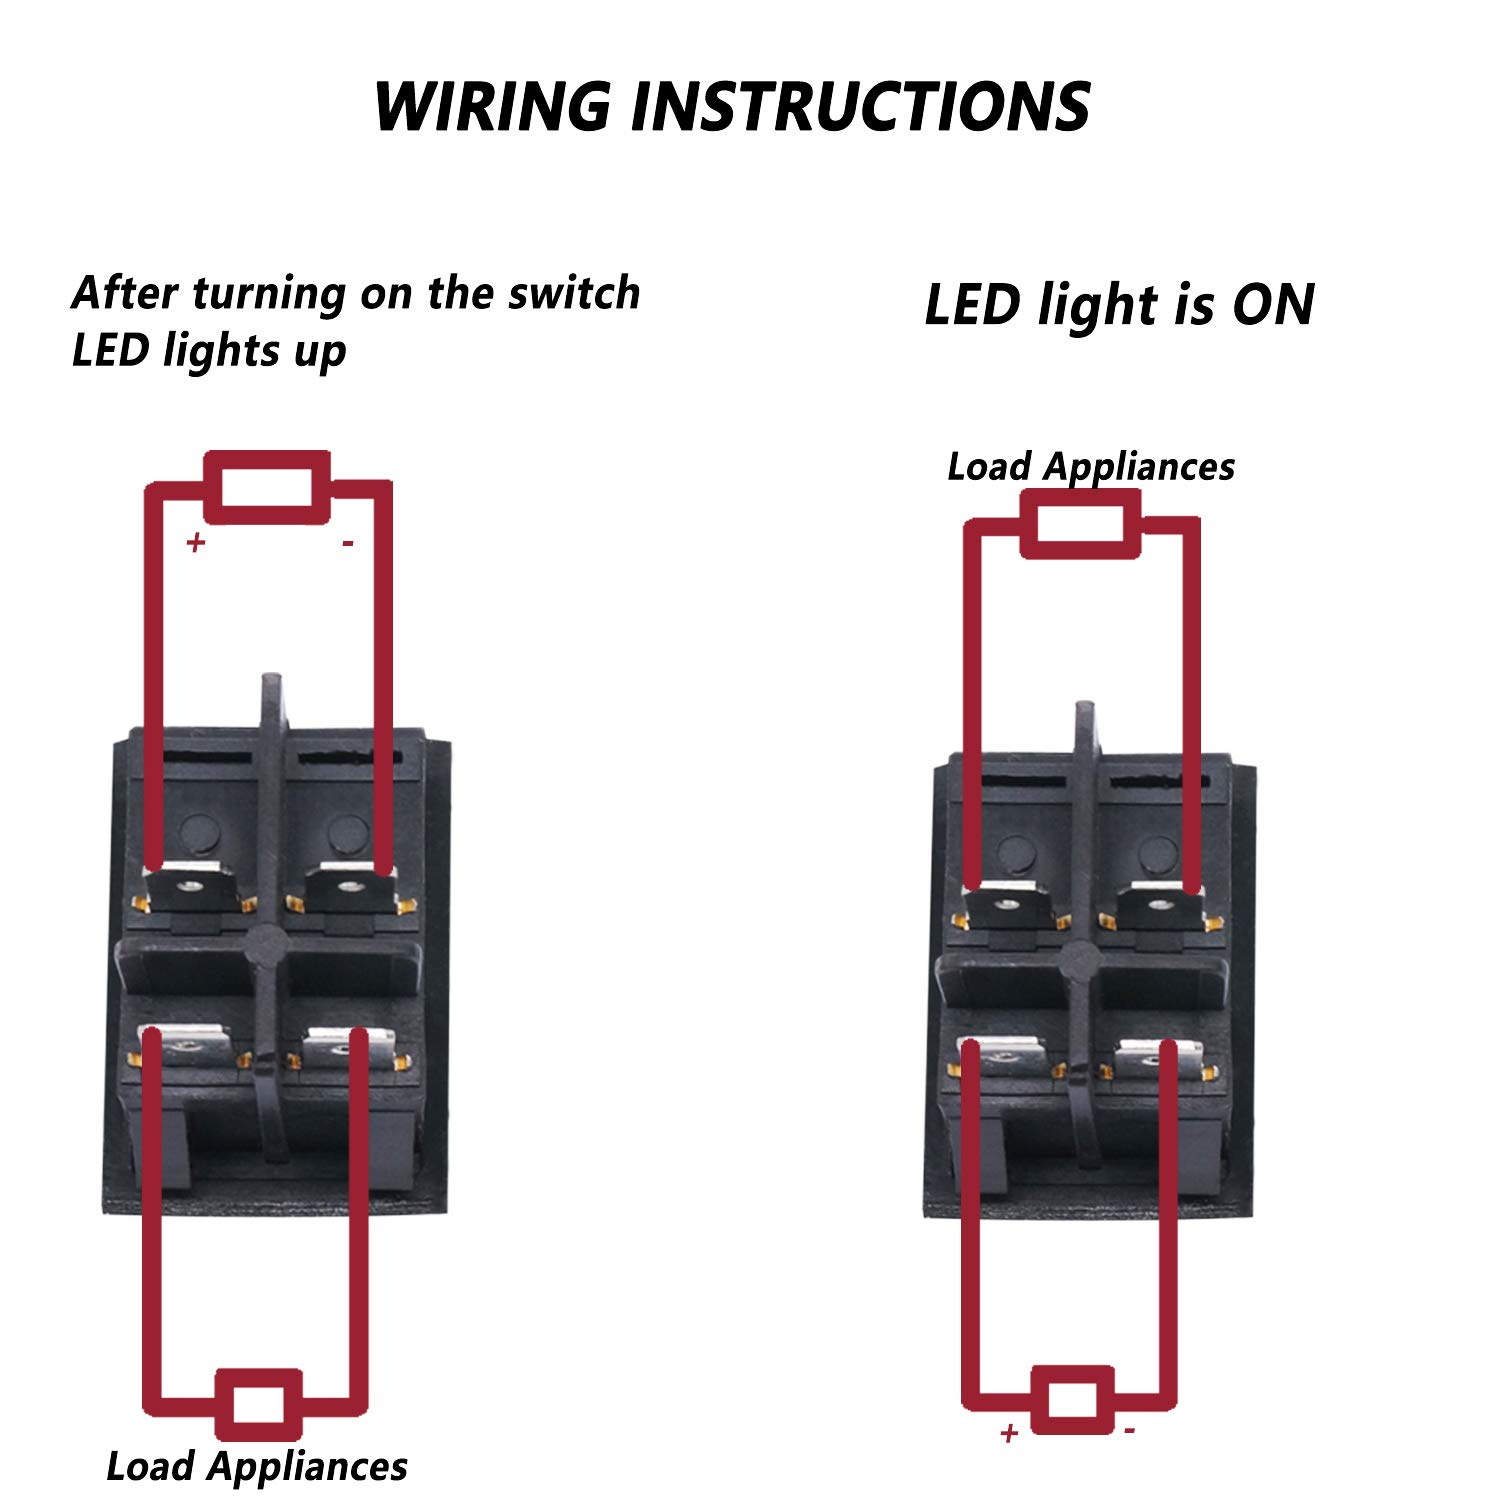 Twidec 2pcs Ac 20a 125v 15a 250v Dpst 4 Pins 2 Position On Off Green And Red Led Light Illuminated Boat Rocker Switch Toggle Quality Assurance For 1 Years Kcd2 201n Rg Amazon Com Industrial Scientific